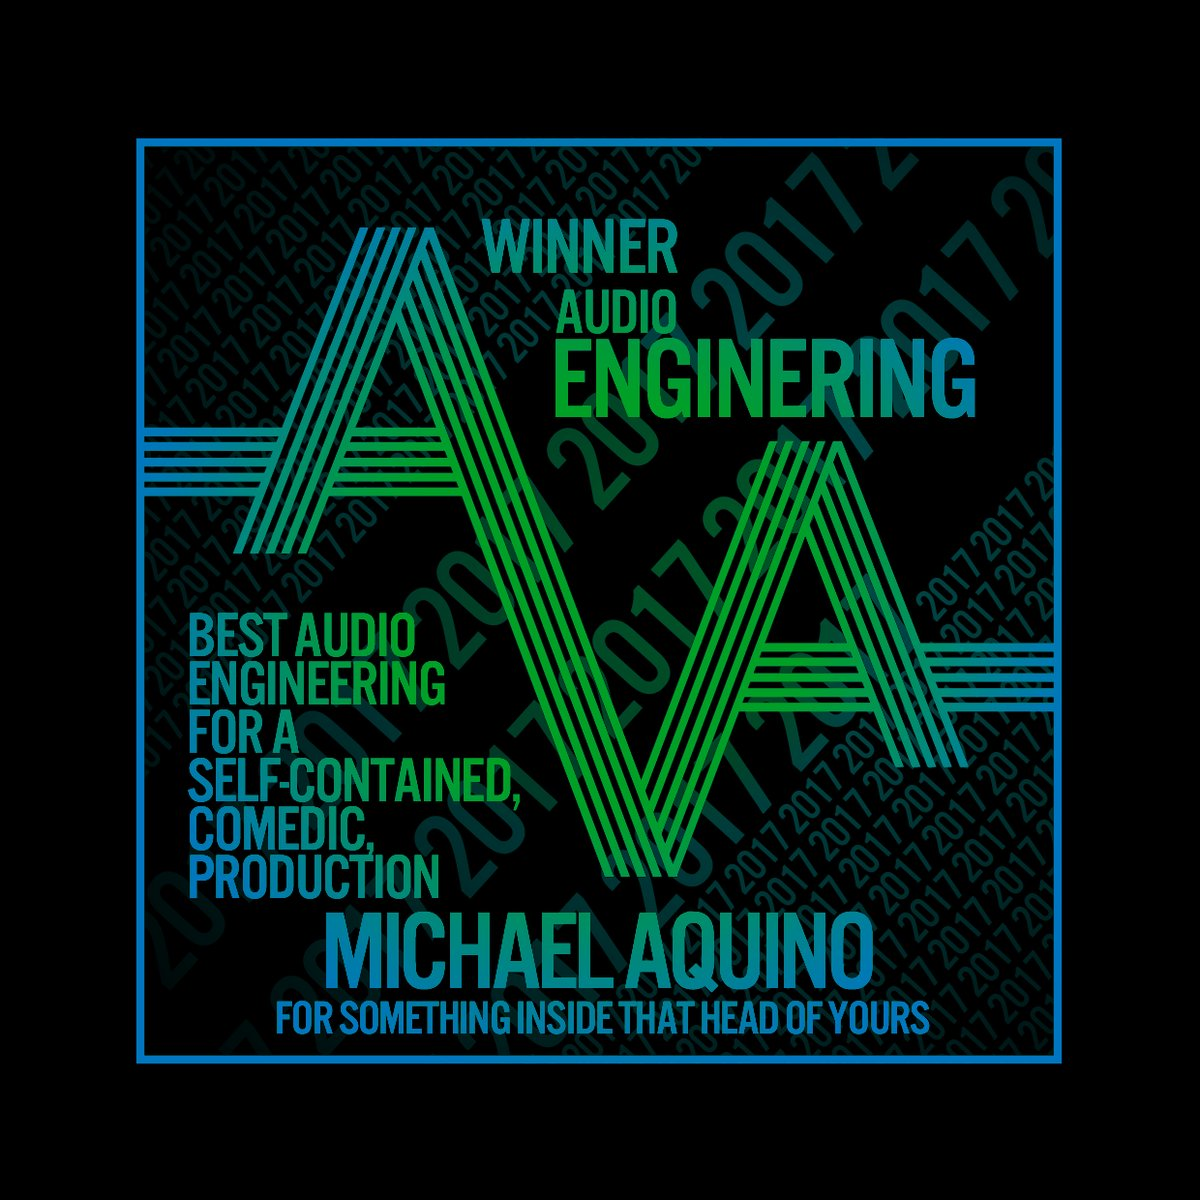 Audio Verse Awards Winner Art, Engineering